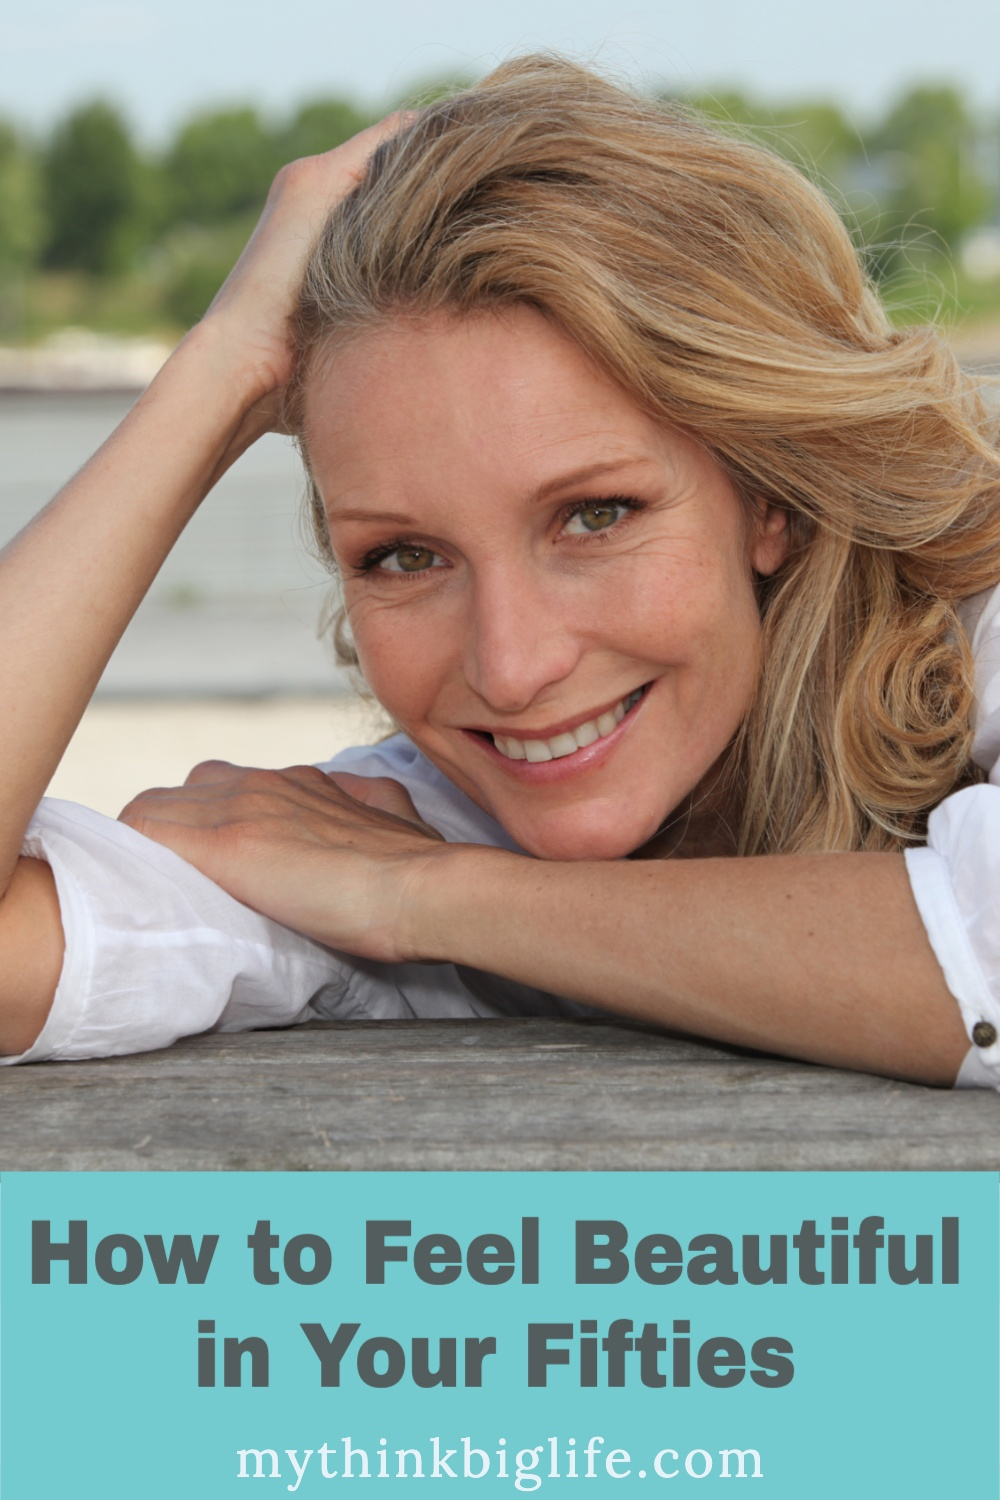 Are you over 50 and ready to feel beautiful again? Or maybe you've never felt beautiful and want to give it a try. Here are my 9 favorite tips on how to feel beautiful inside and out.